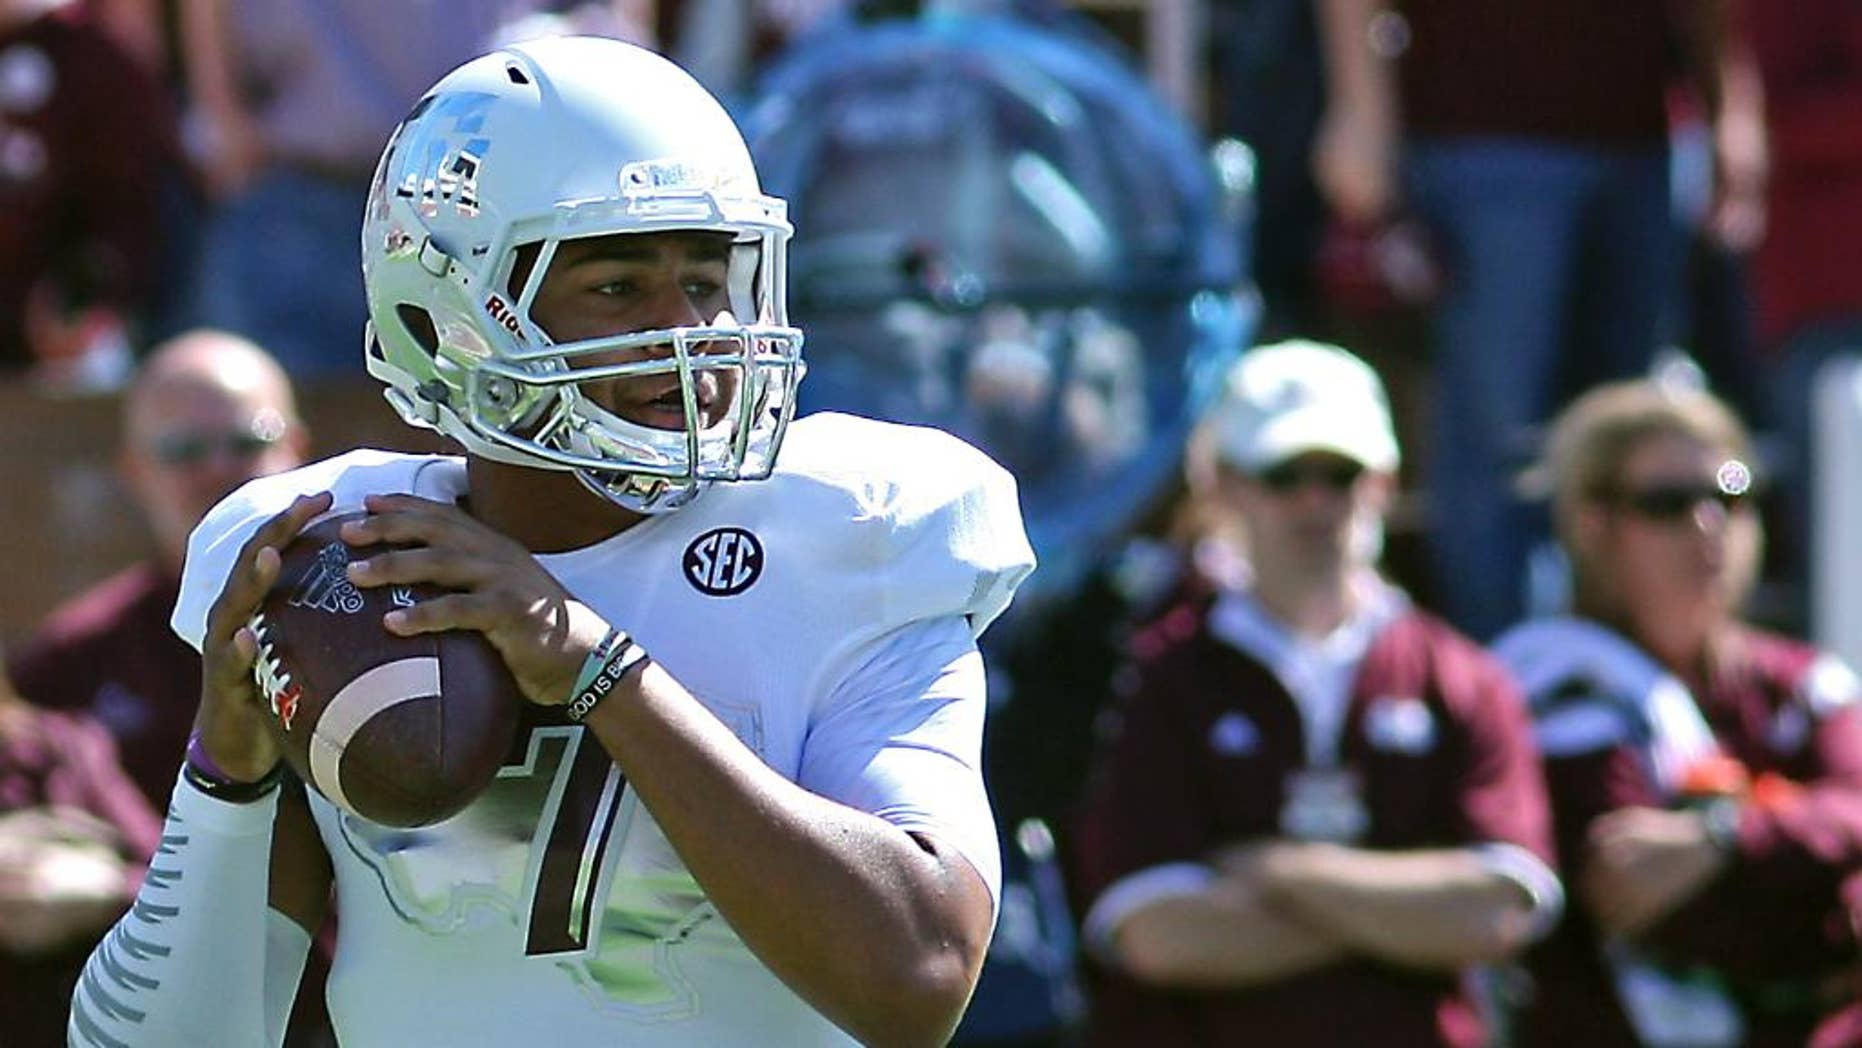 Texas A&M quarterback Kenny Hill (7) prepares throw a pass during the first half of an NCAA college football game against Mississippi State in Starkville, Miss., Saturday, Oct. 4, 2014. (AP Photo/Jim Lytle)